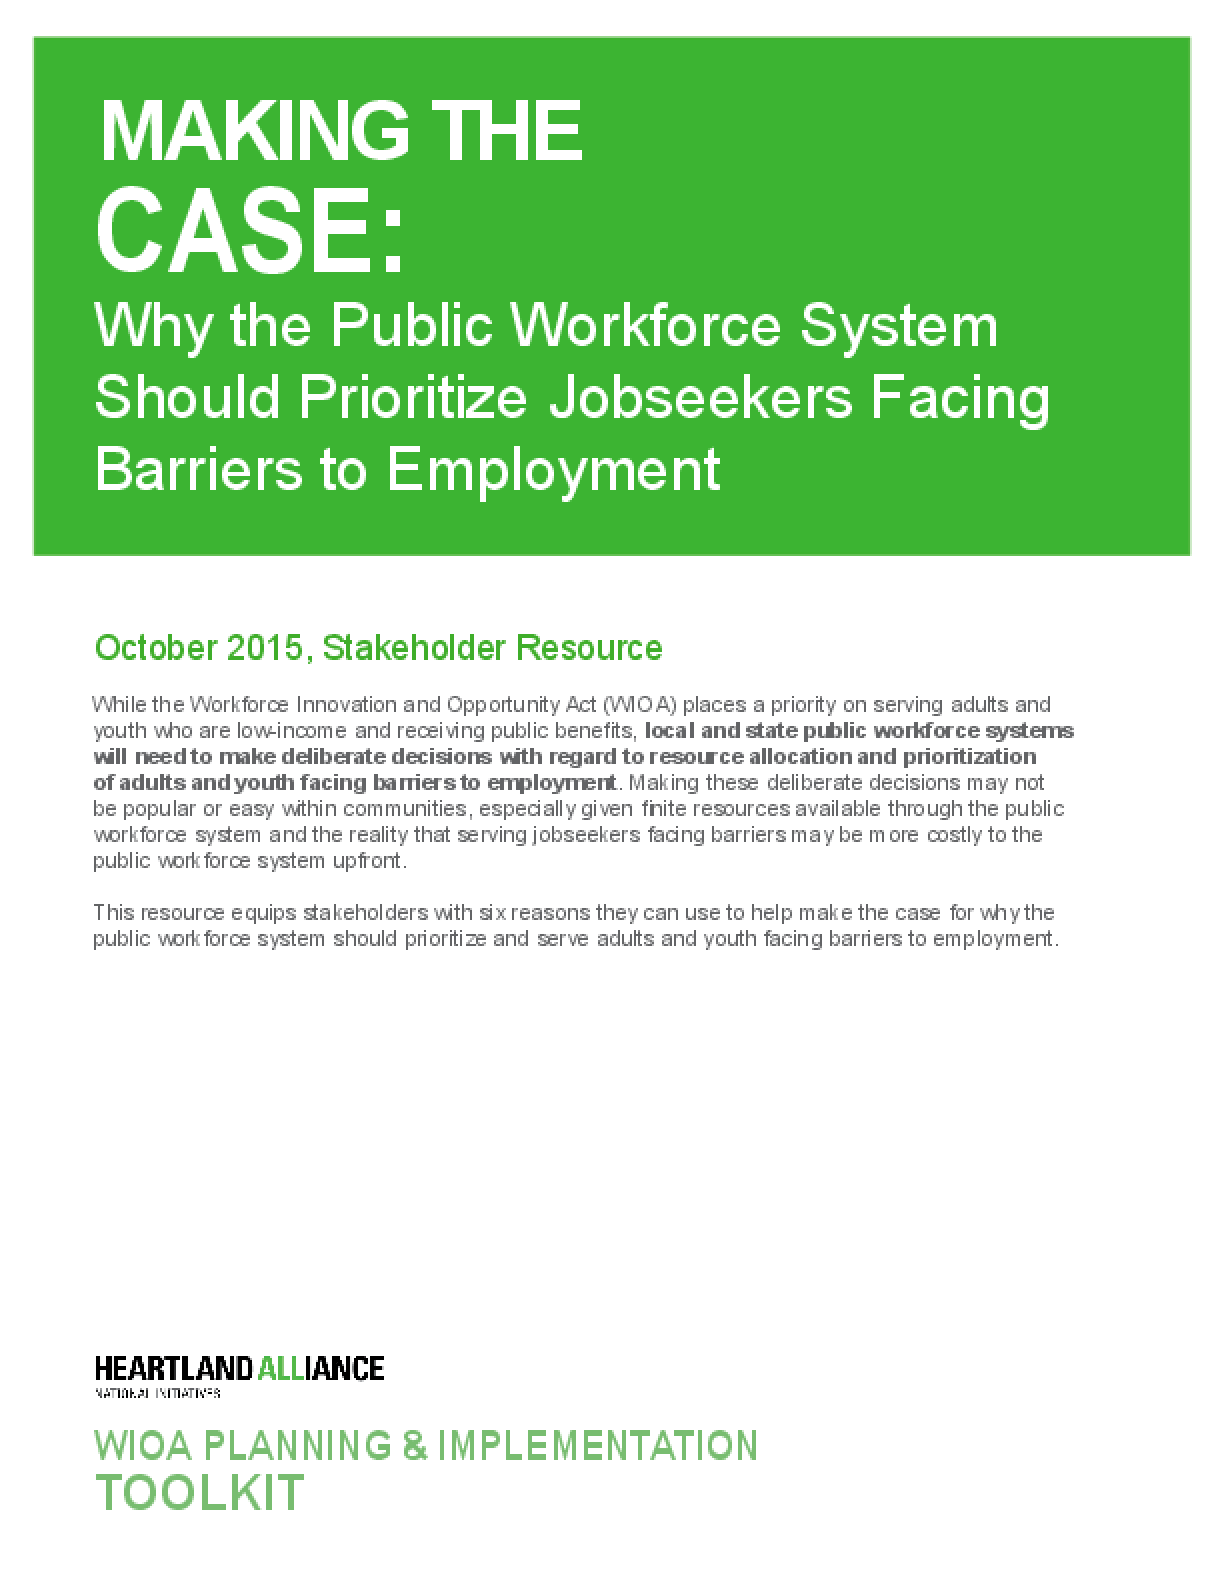 Making the Case: Why the Public Workforce System Should Prioritize Jobseekers Facing Barriers to Employment